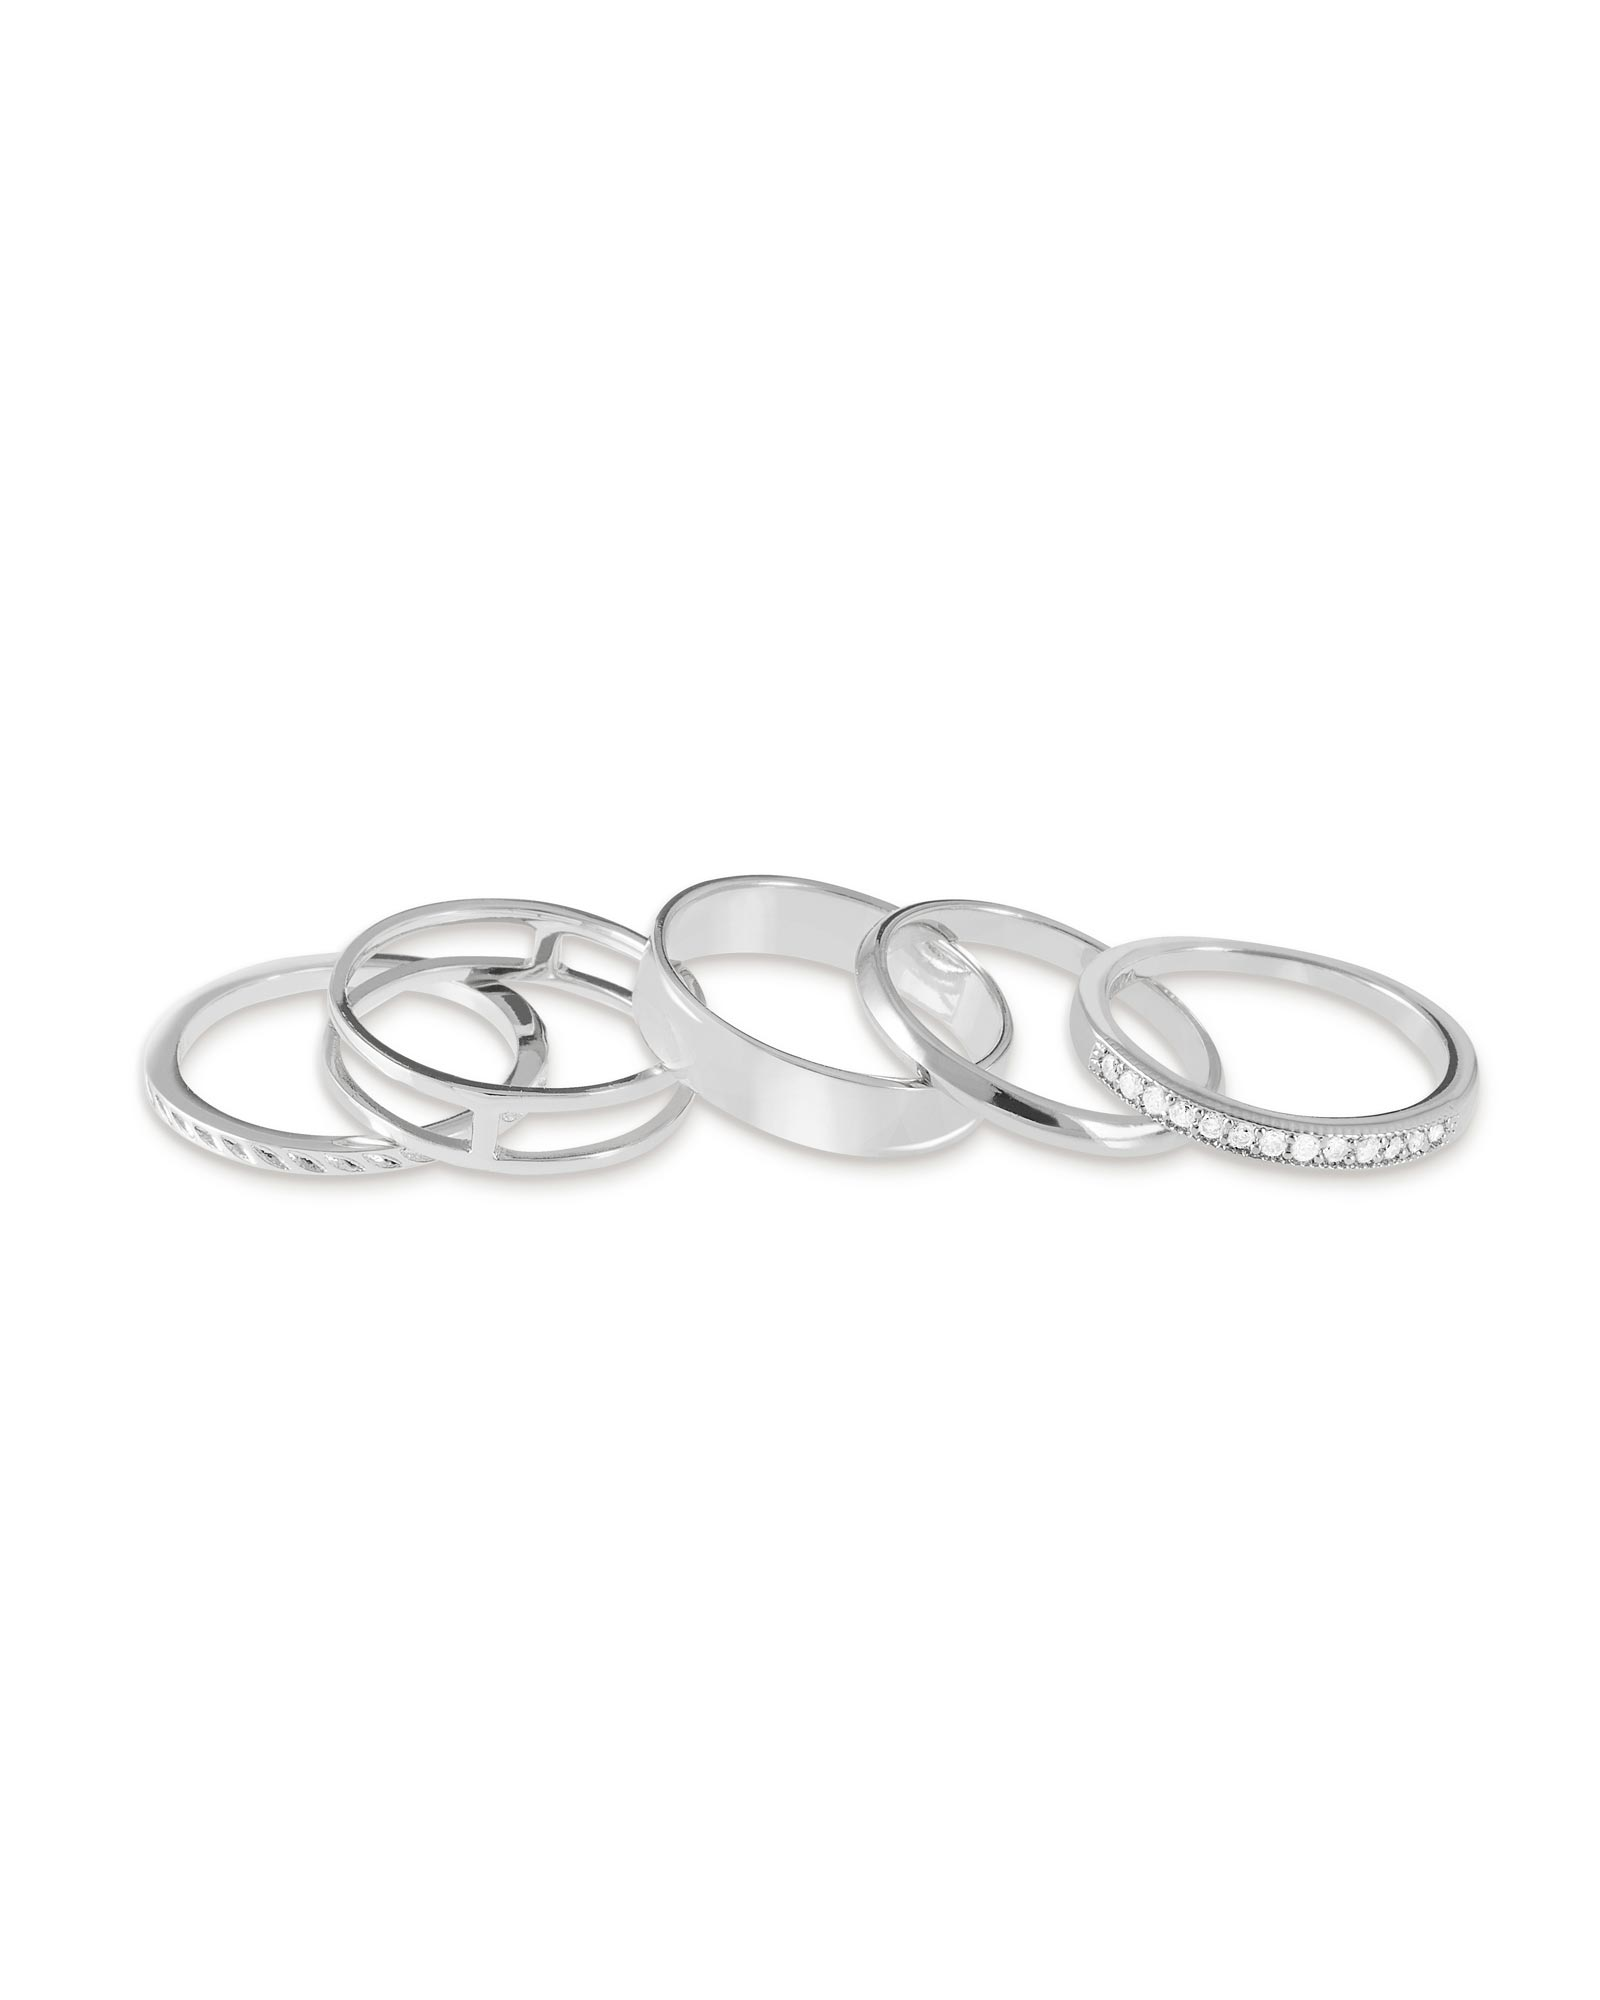 Kara Midi Ring Set in Silver